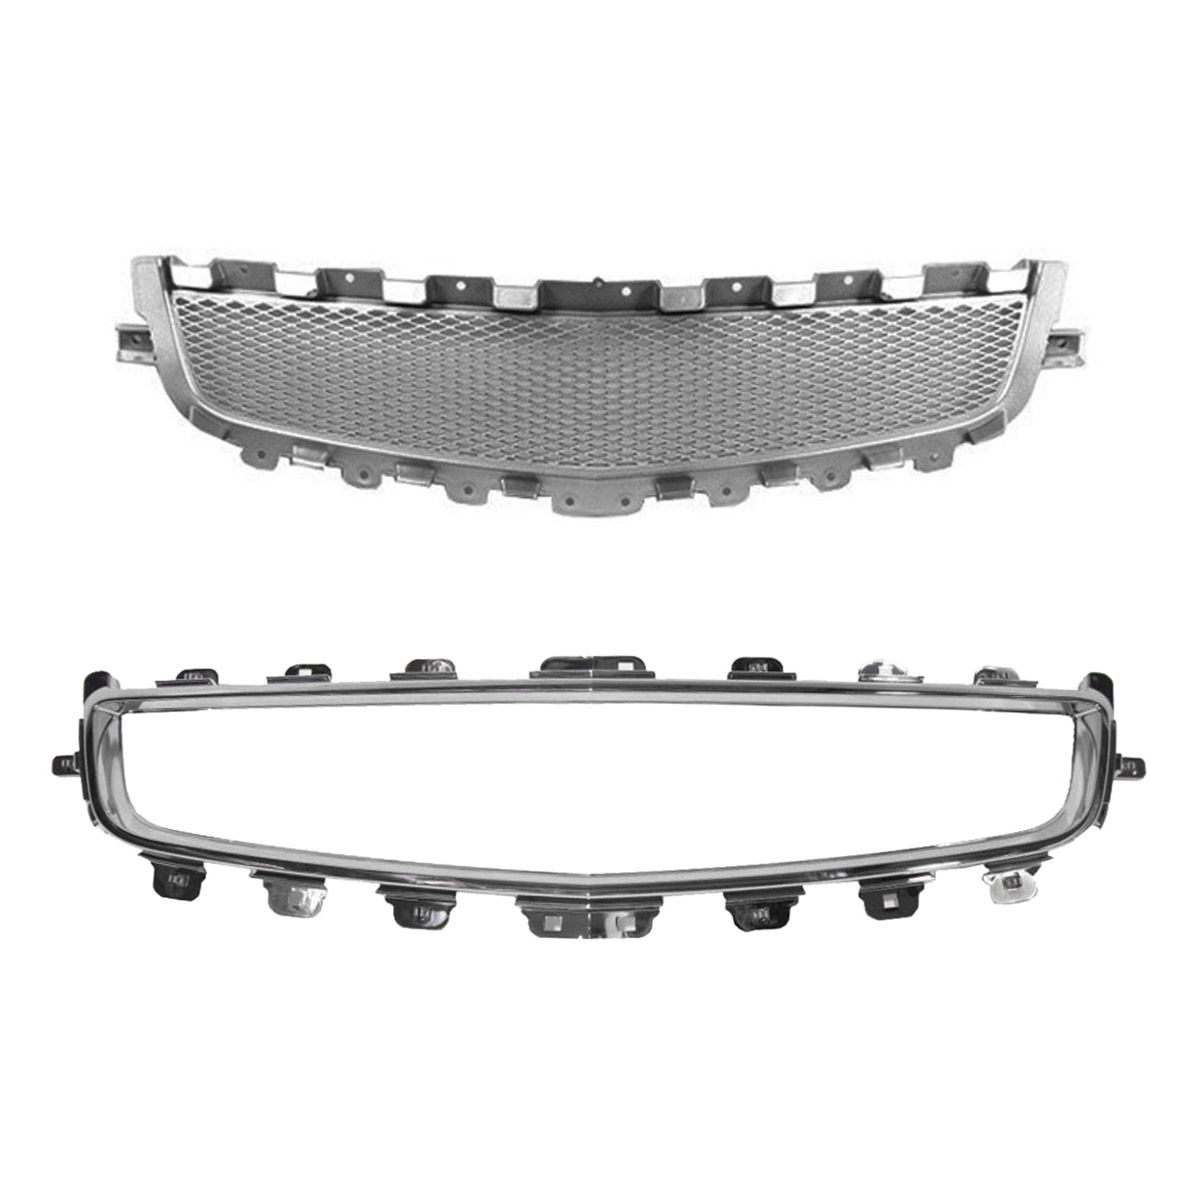 NEW 04-05 GRILLE MOLDING CHROME FOR CHEVROLET MALIBU MAXX GM1210109